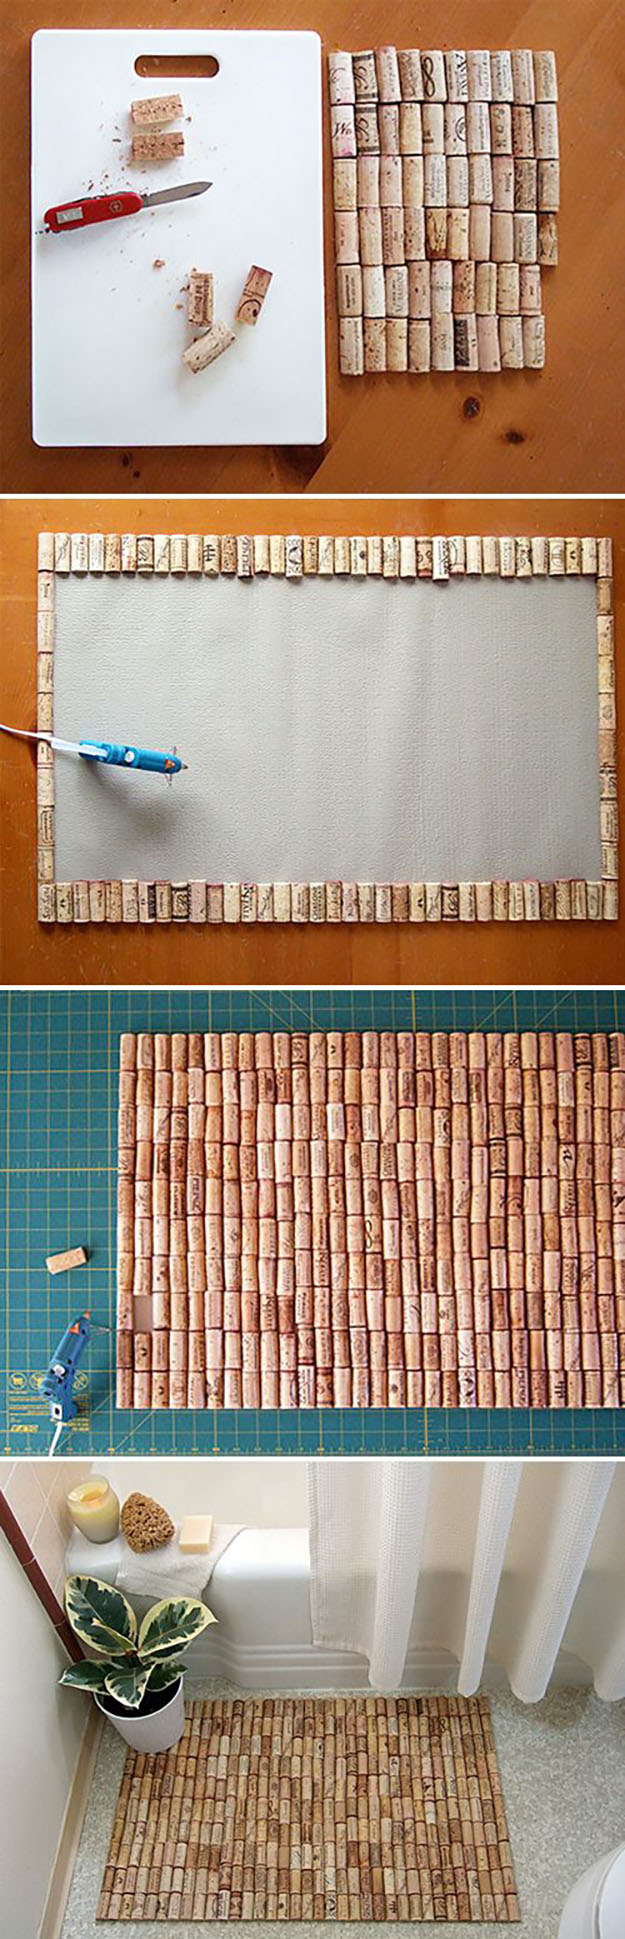 Cool 50 Clever Wine Cork Crafts Youll Fall In Love With Diy Joy Largest Home Design Picture Inspirations Pitcheantrous